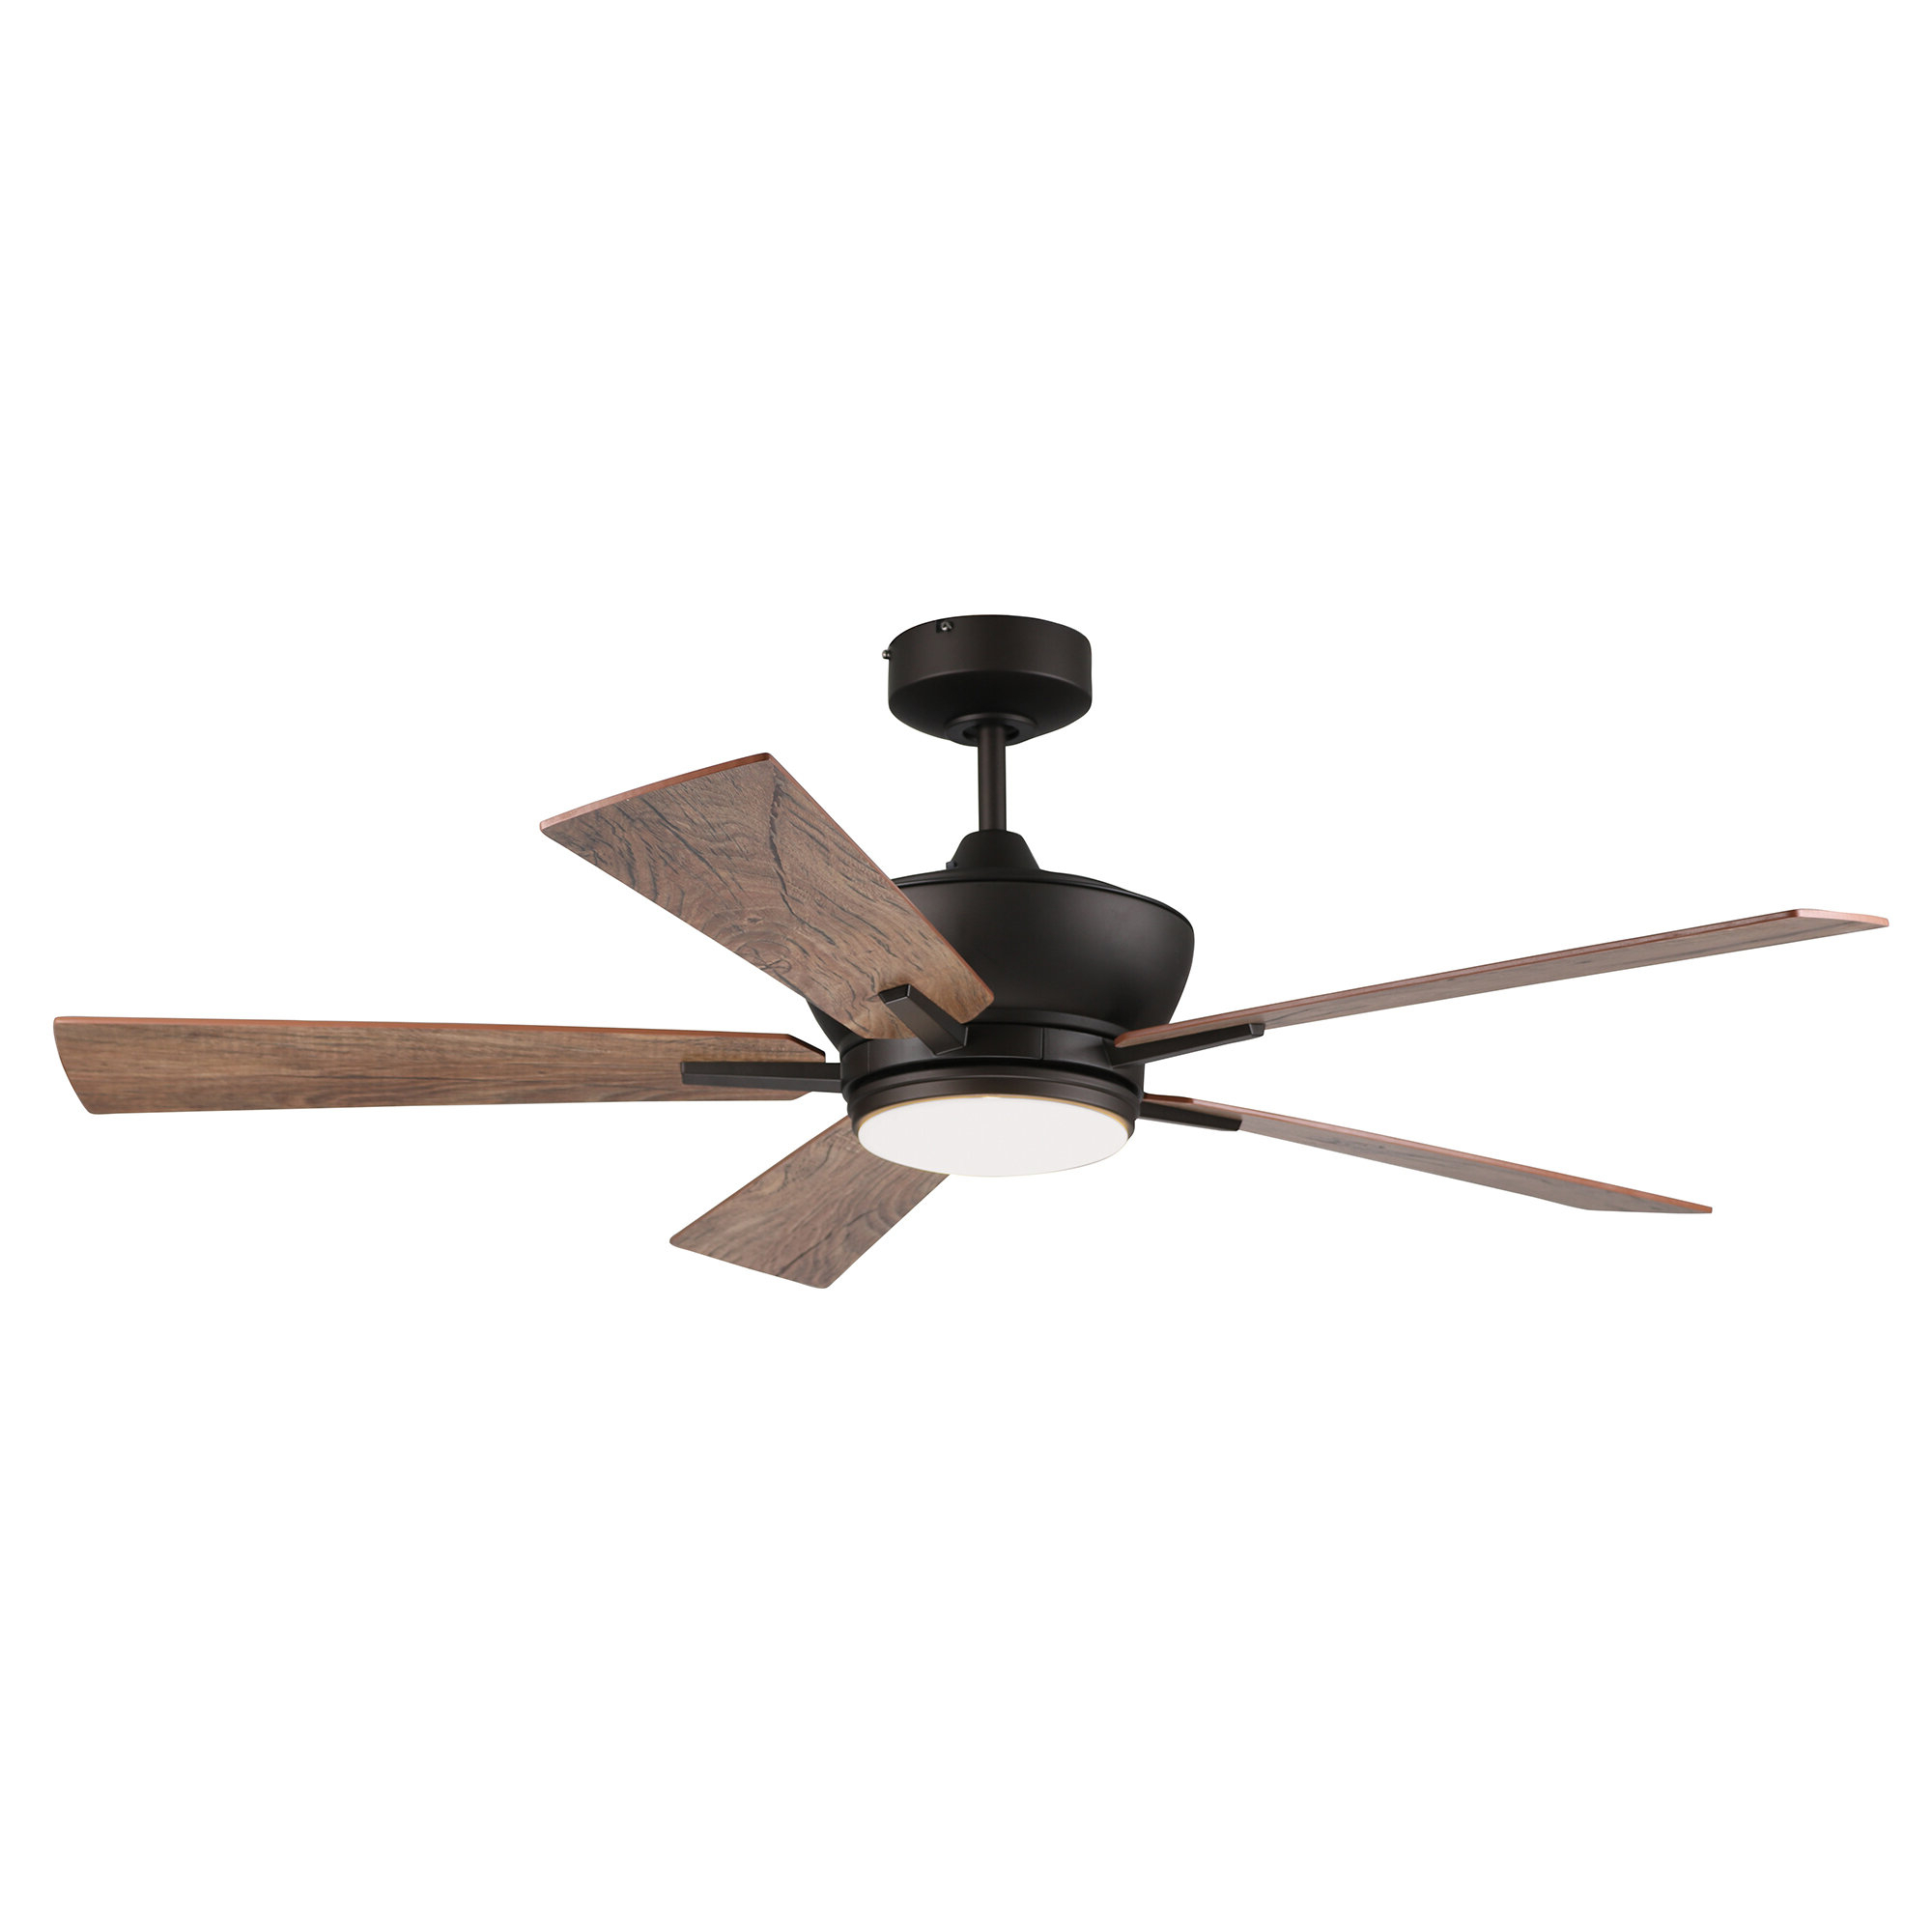 """Wilburton 3 Blade Outdoor Ceiling Fans Intended For Well Known 52"""" Georgetown Tri Mount 5 Blade Ceiling Fan With Remote, Light Kit Included (View 17 of 20)"""